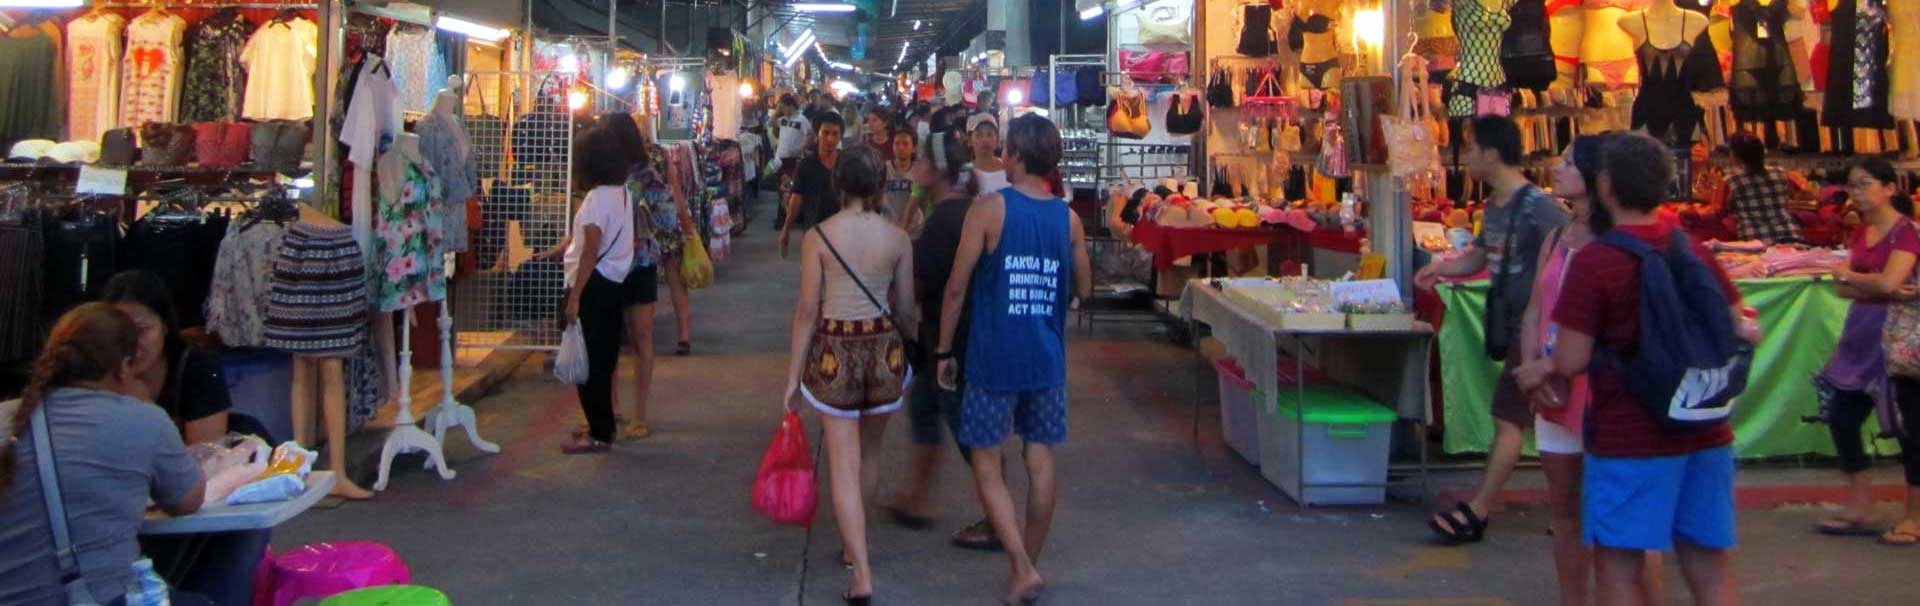 Phuket's Naka Market by night